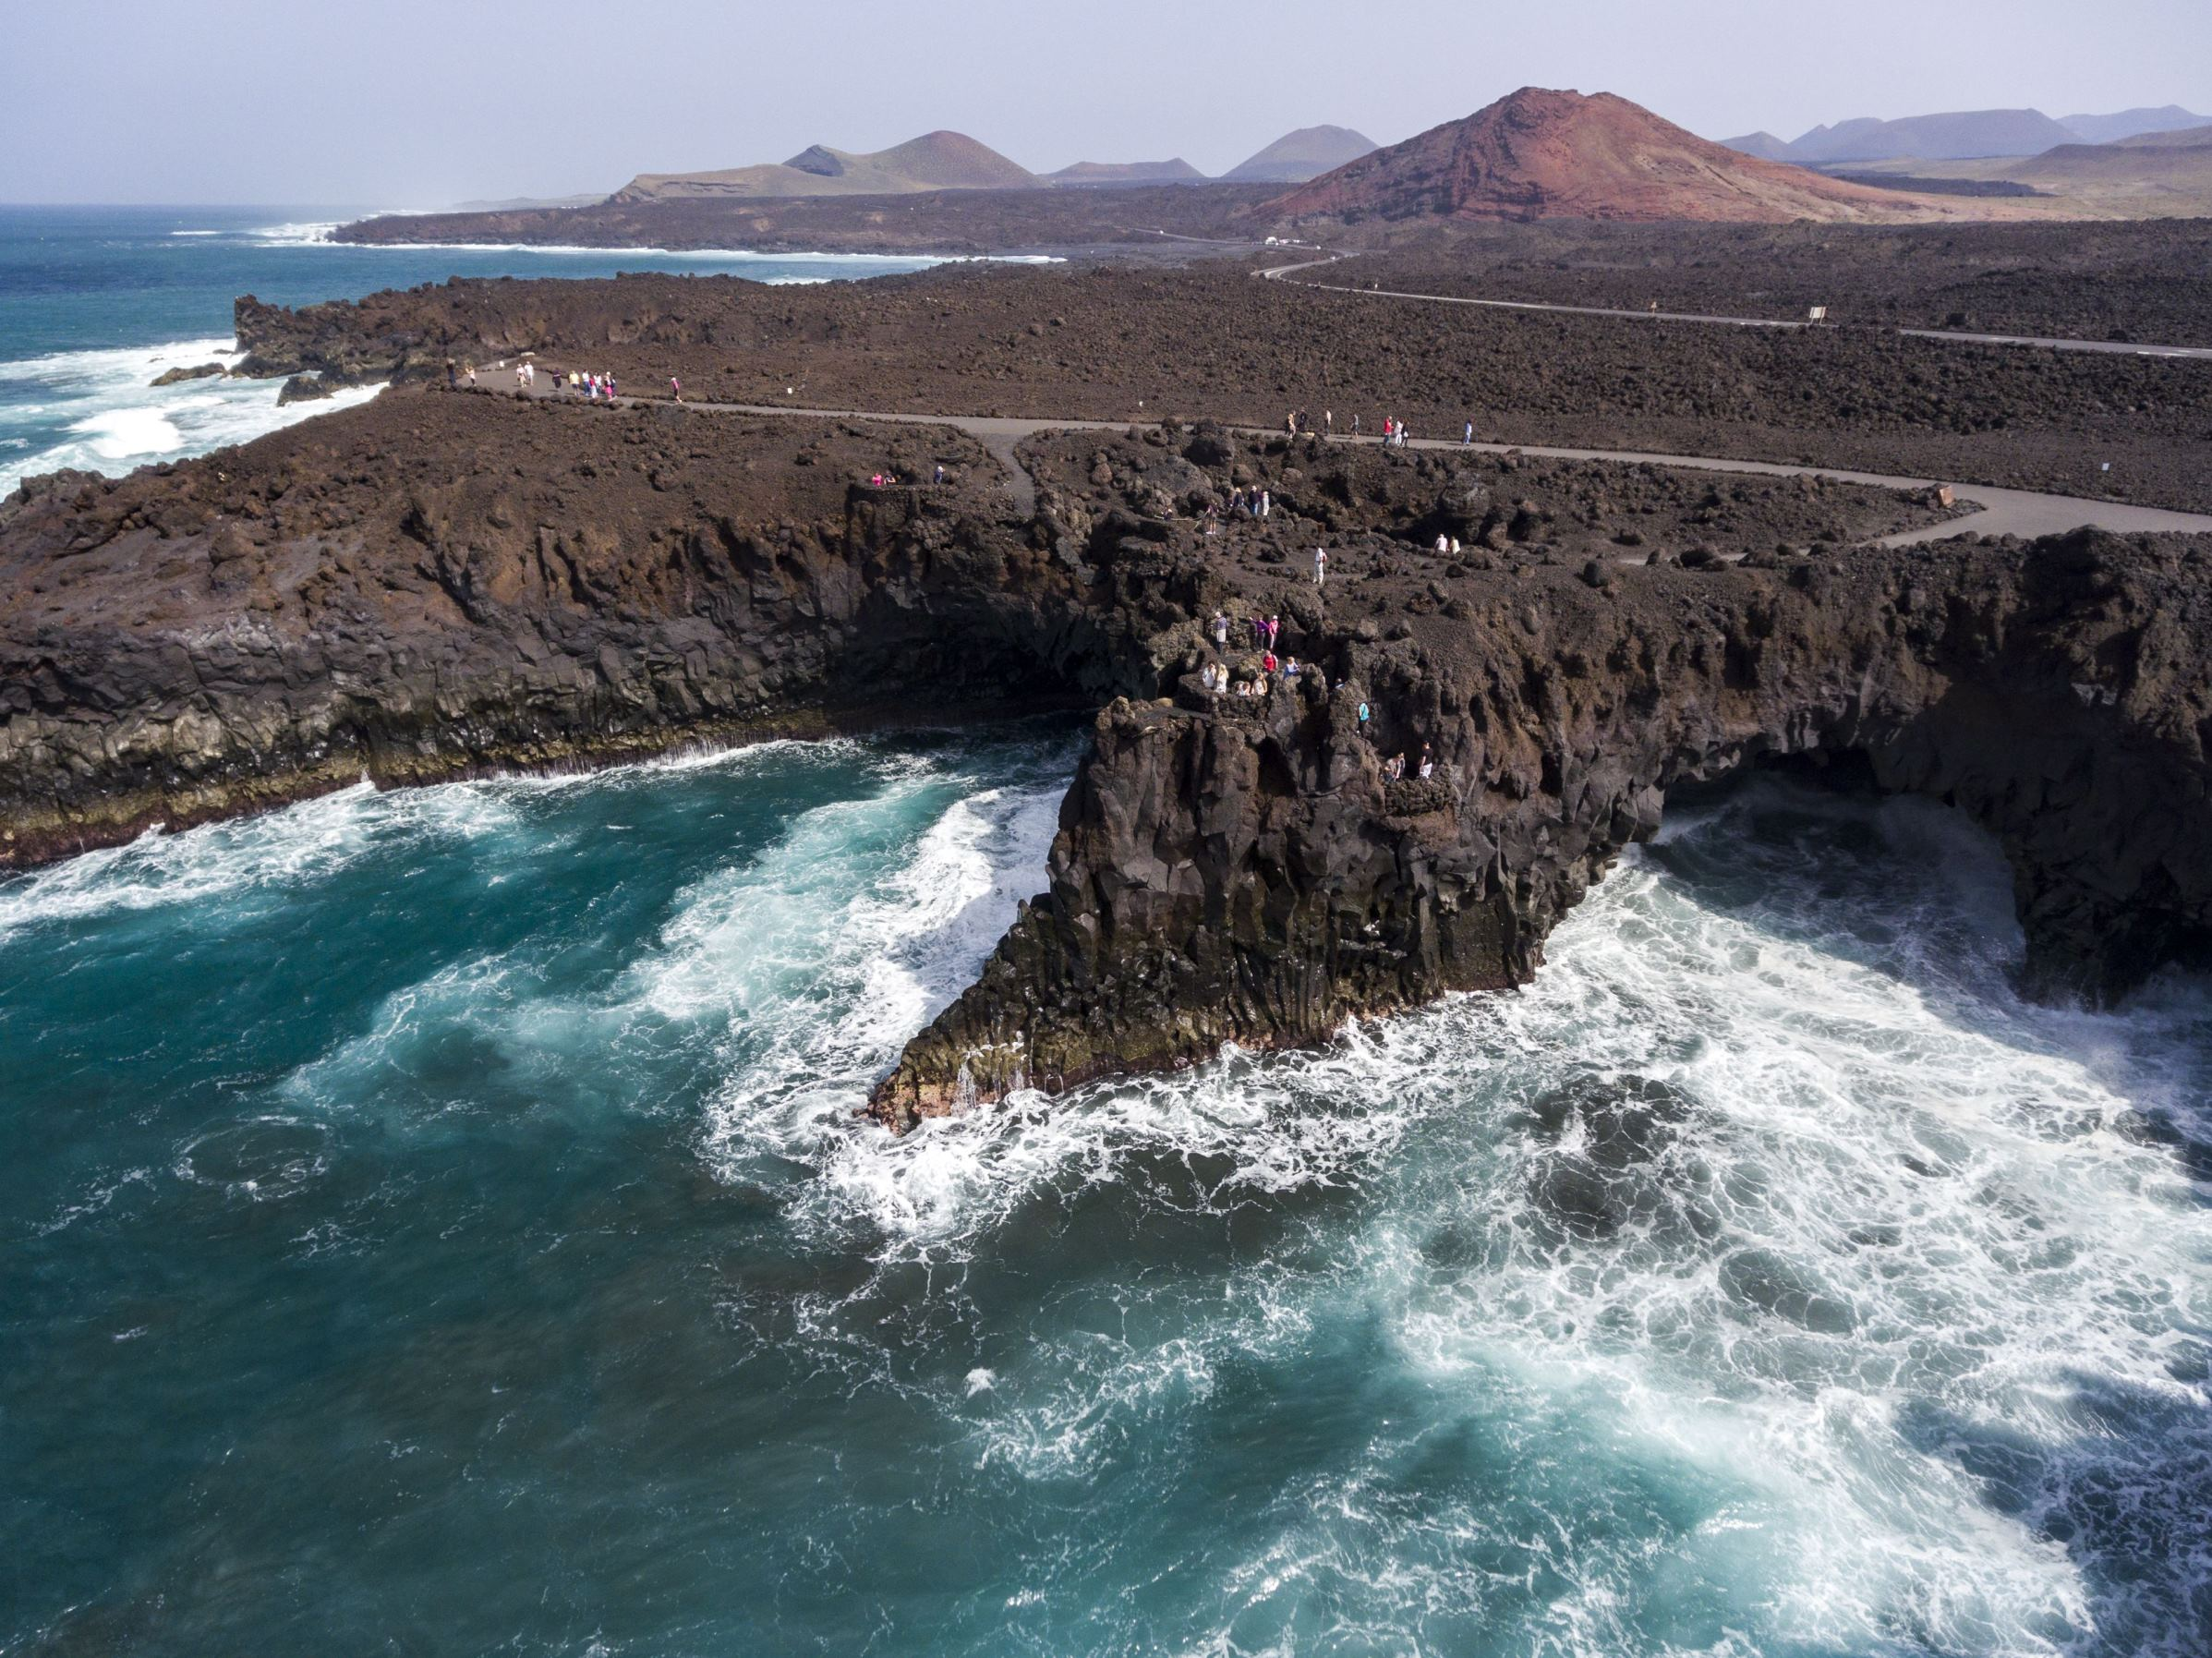 Slide 70 of 100: Much of Lanzarote has been shaped by devastating volcanic eruptions during the 18th century, leaving behind a lunar type landscape, black beaches and locations such as the Timanfaya National Park, which is home to an active volcano that gives the park its name